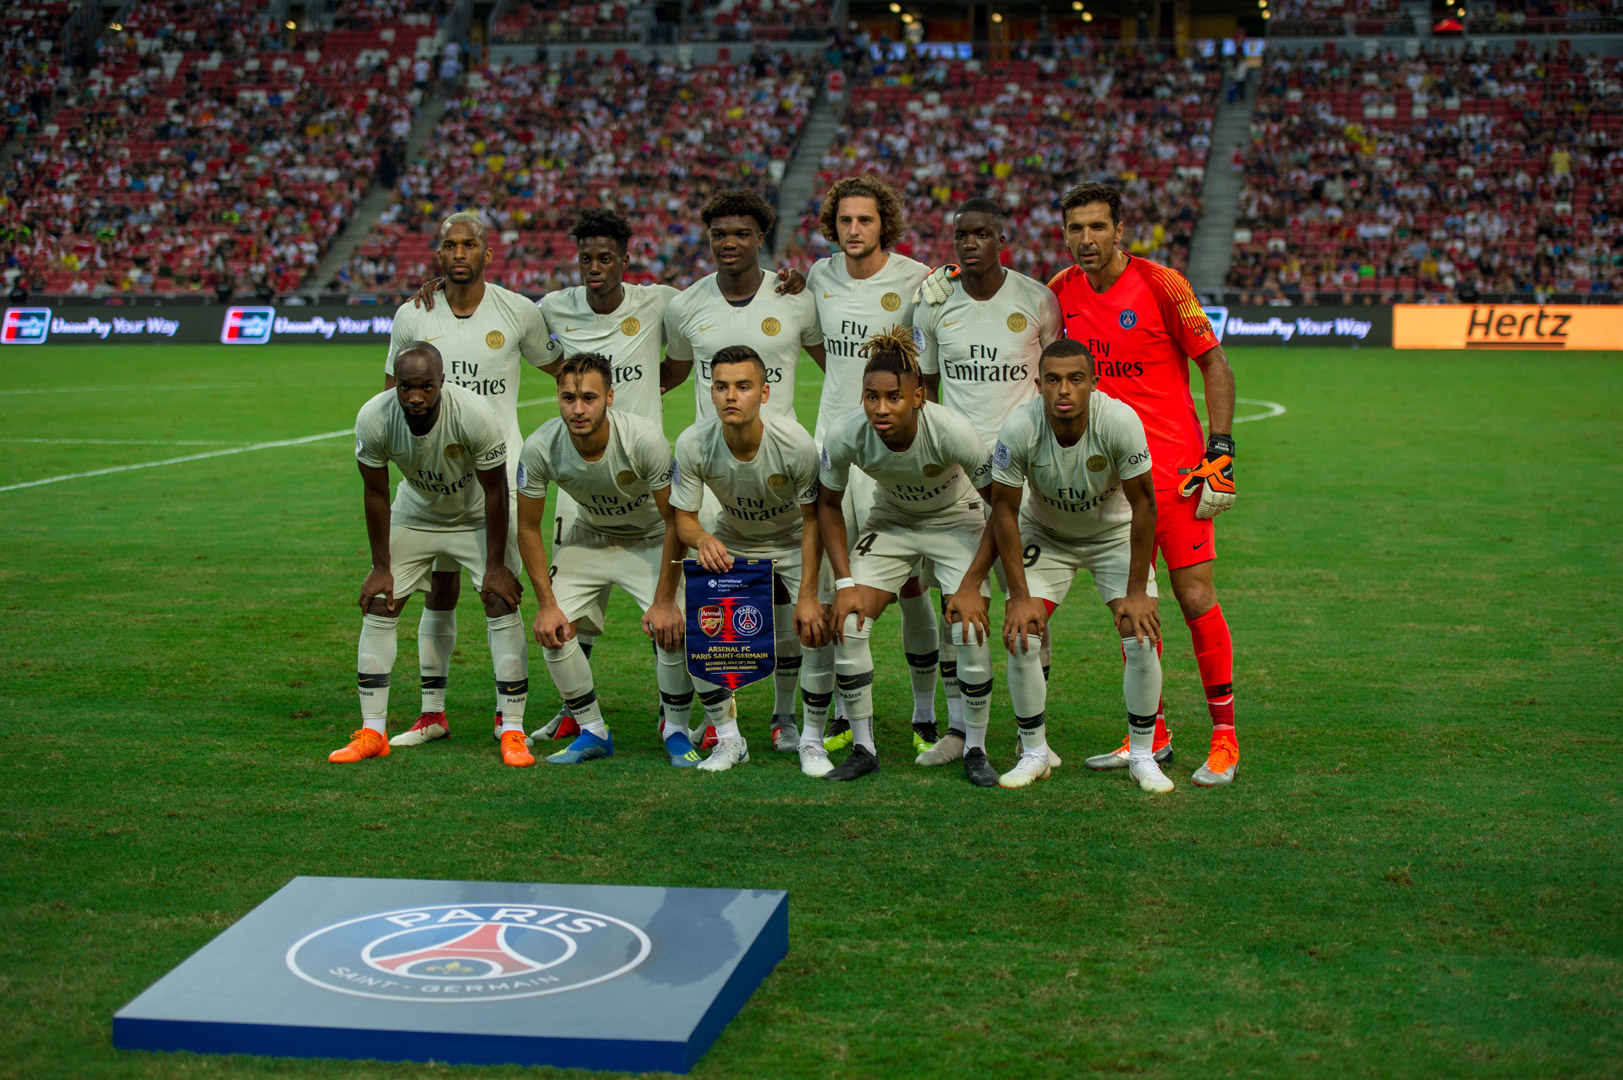 Arsenal vs PSG - PSG Lineup